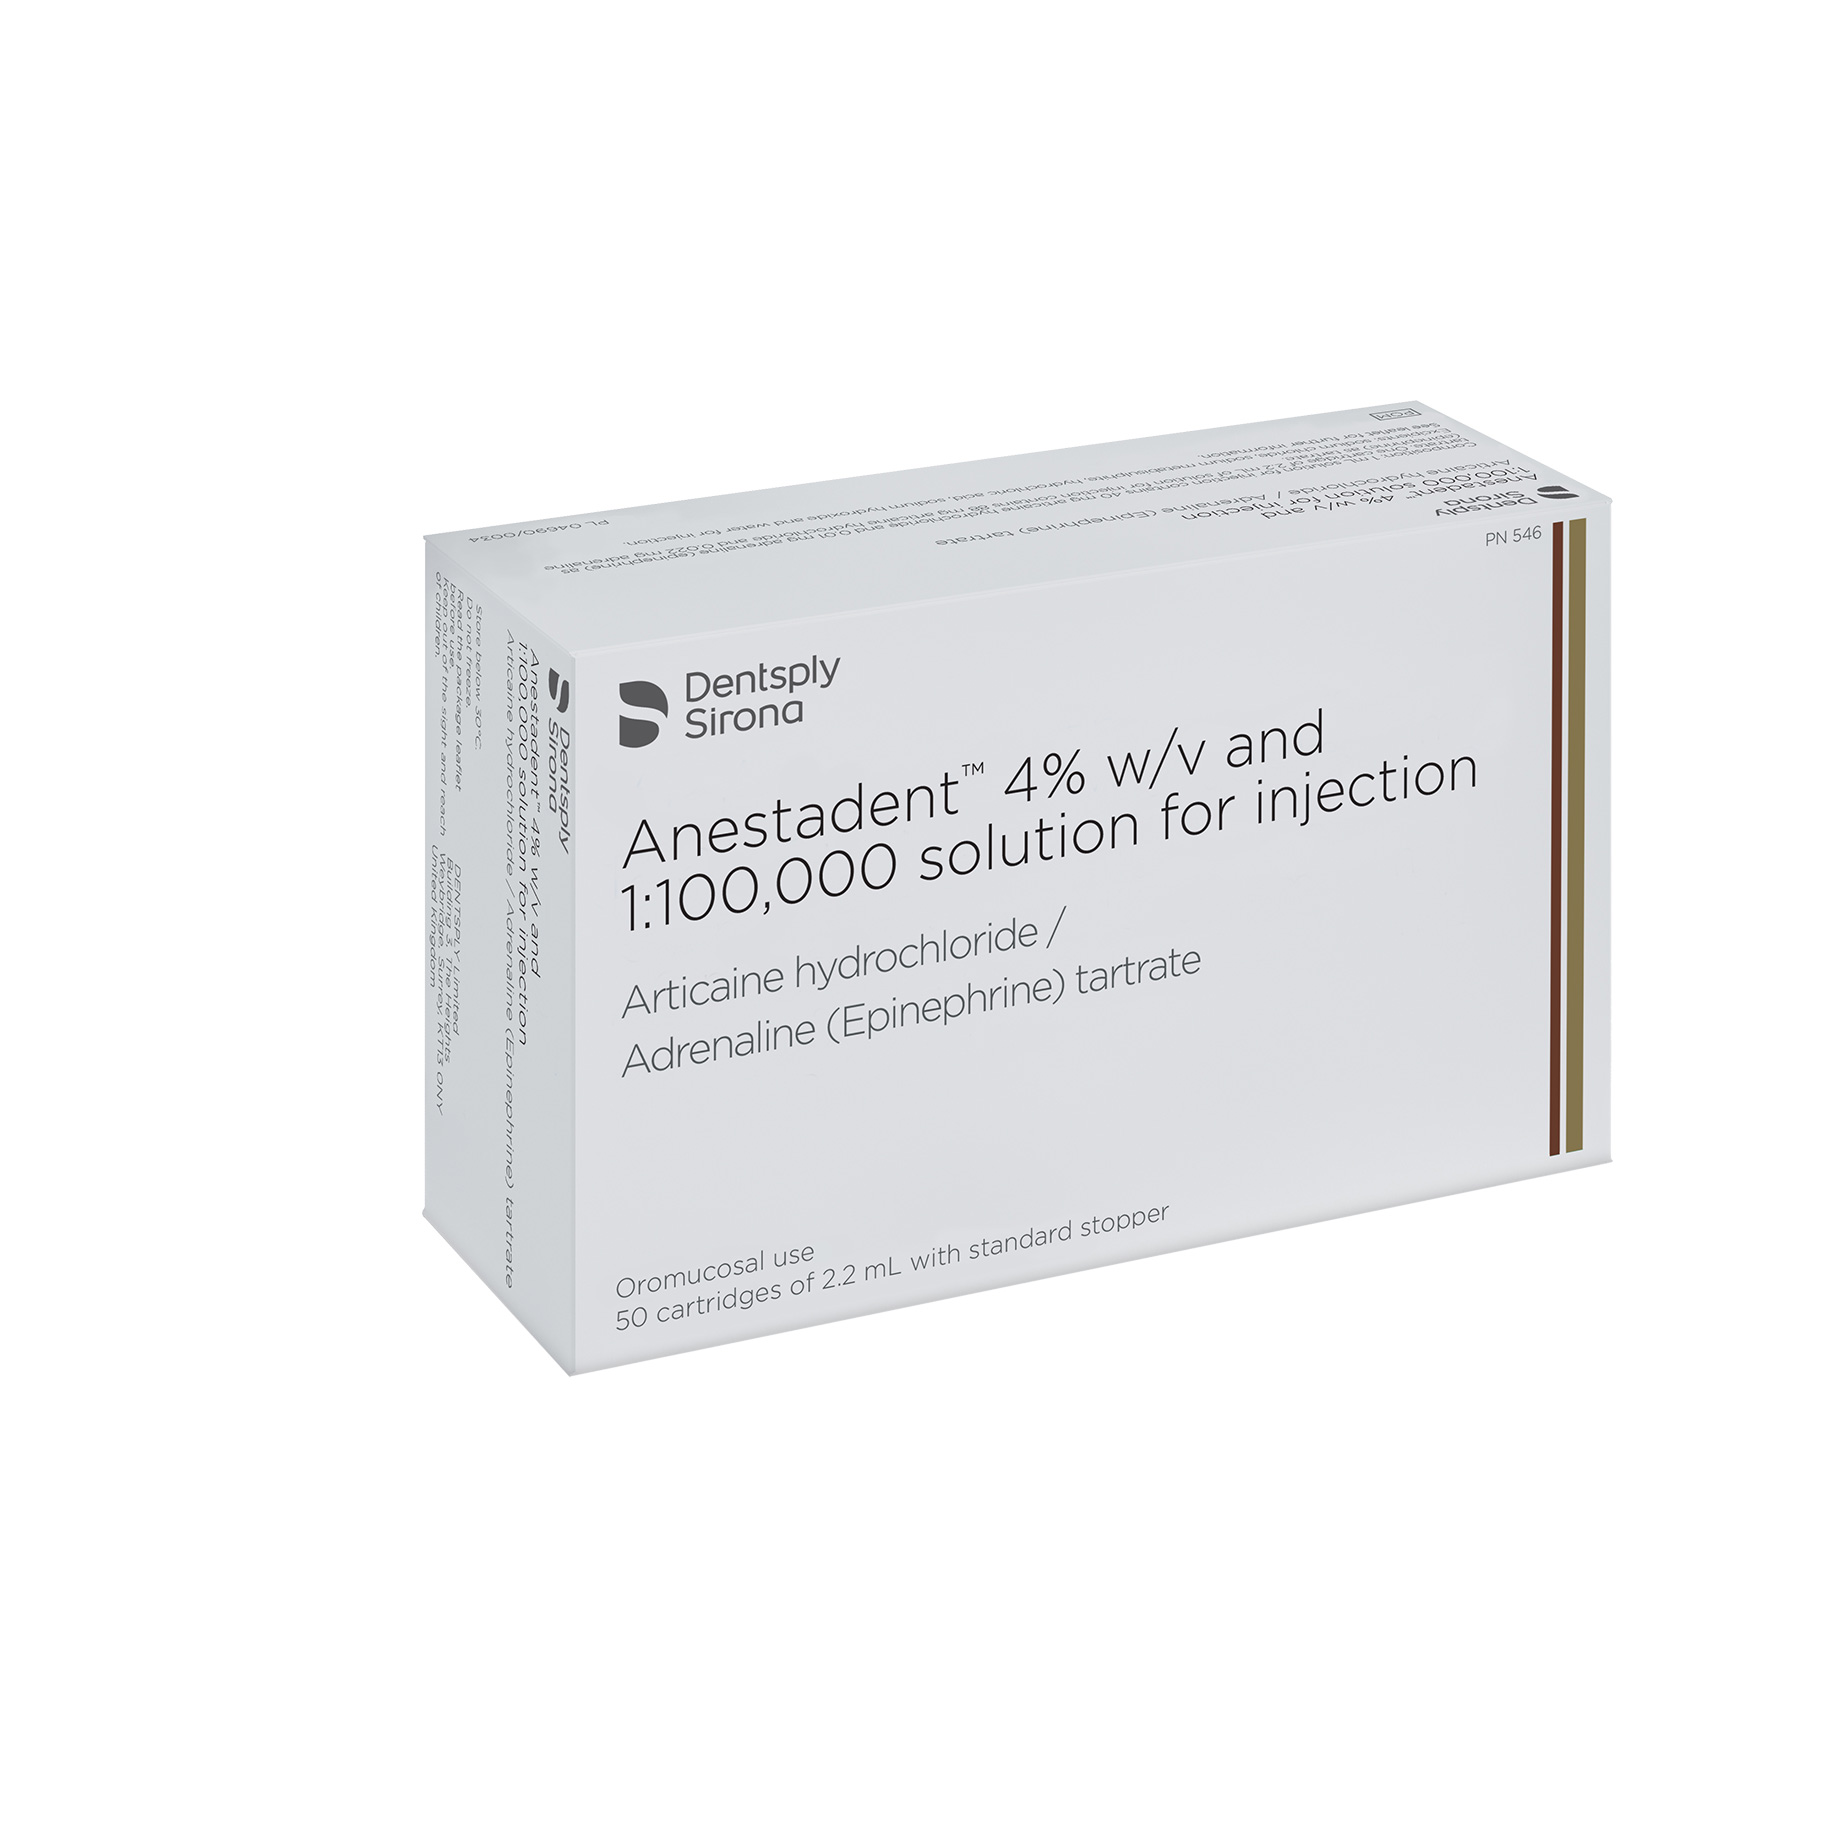 Anestadent 4% w/v and 1:100,000 Solution for Injection